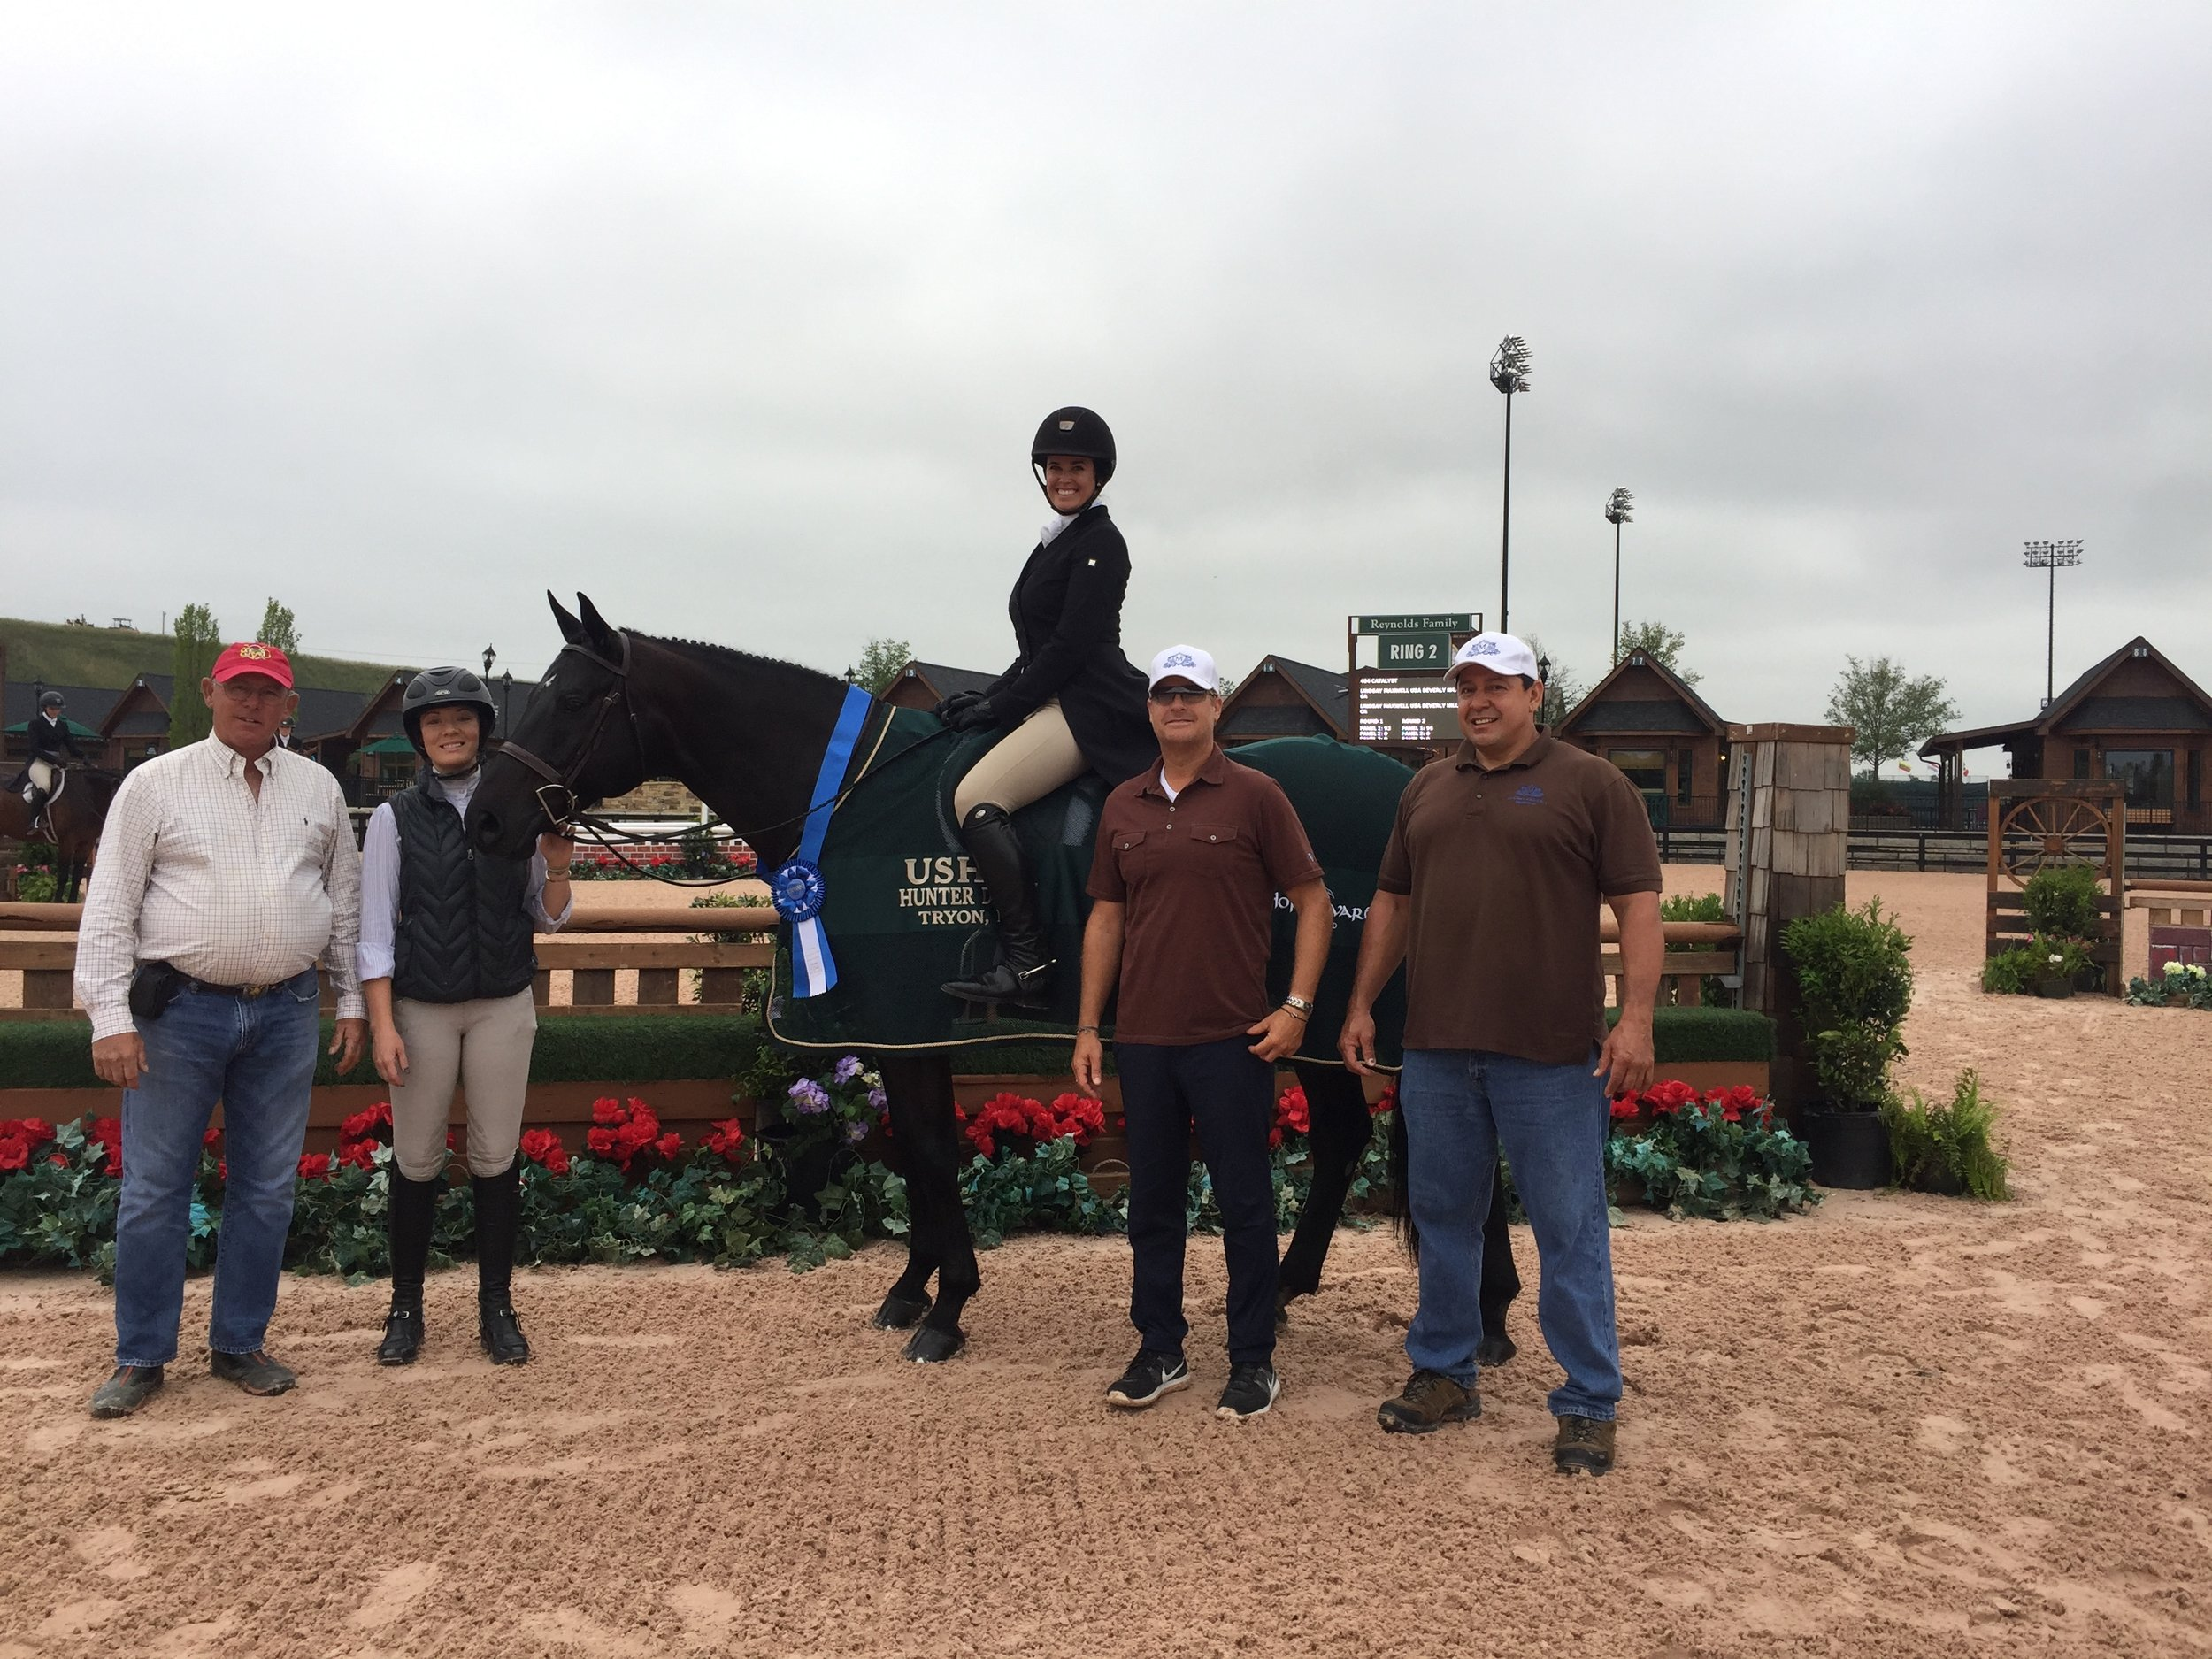 Lindsay Maxwell and Catalyst won the USHA National Hunter Derby in Tryon